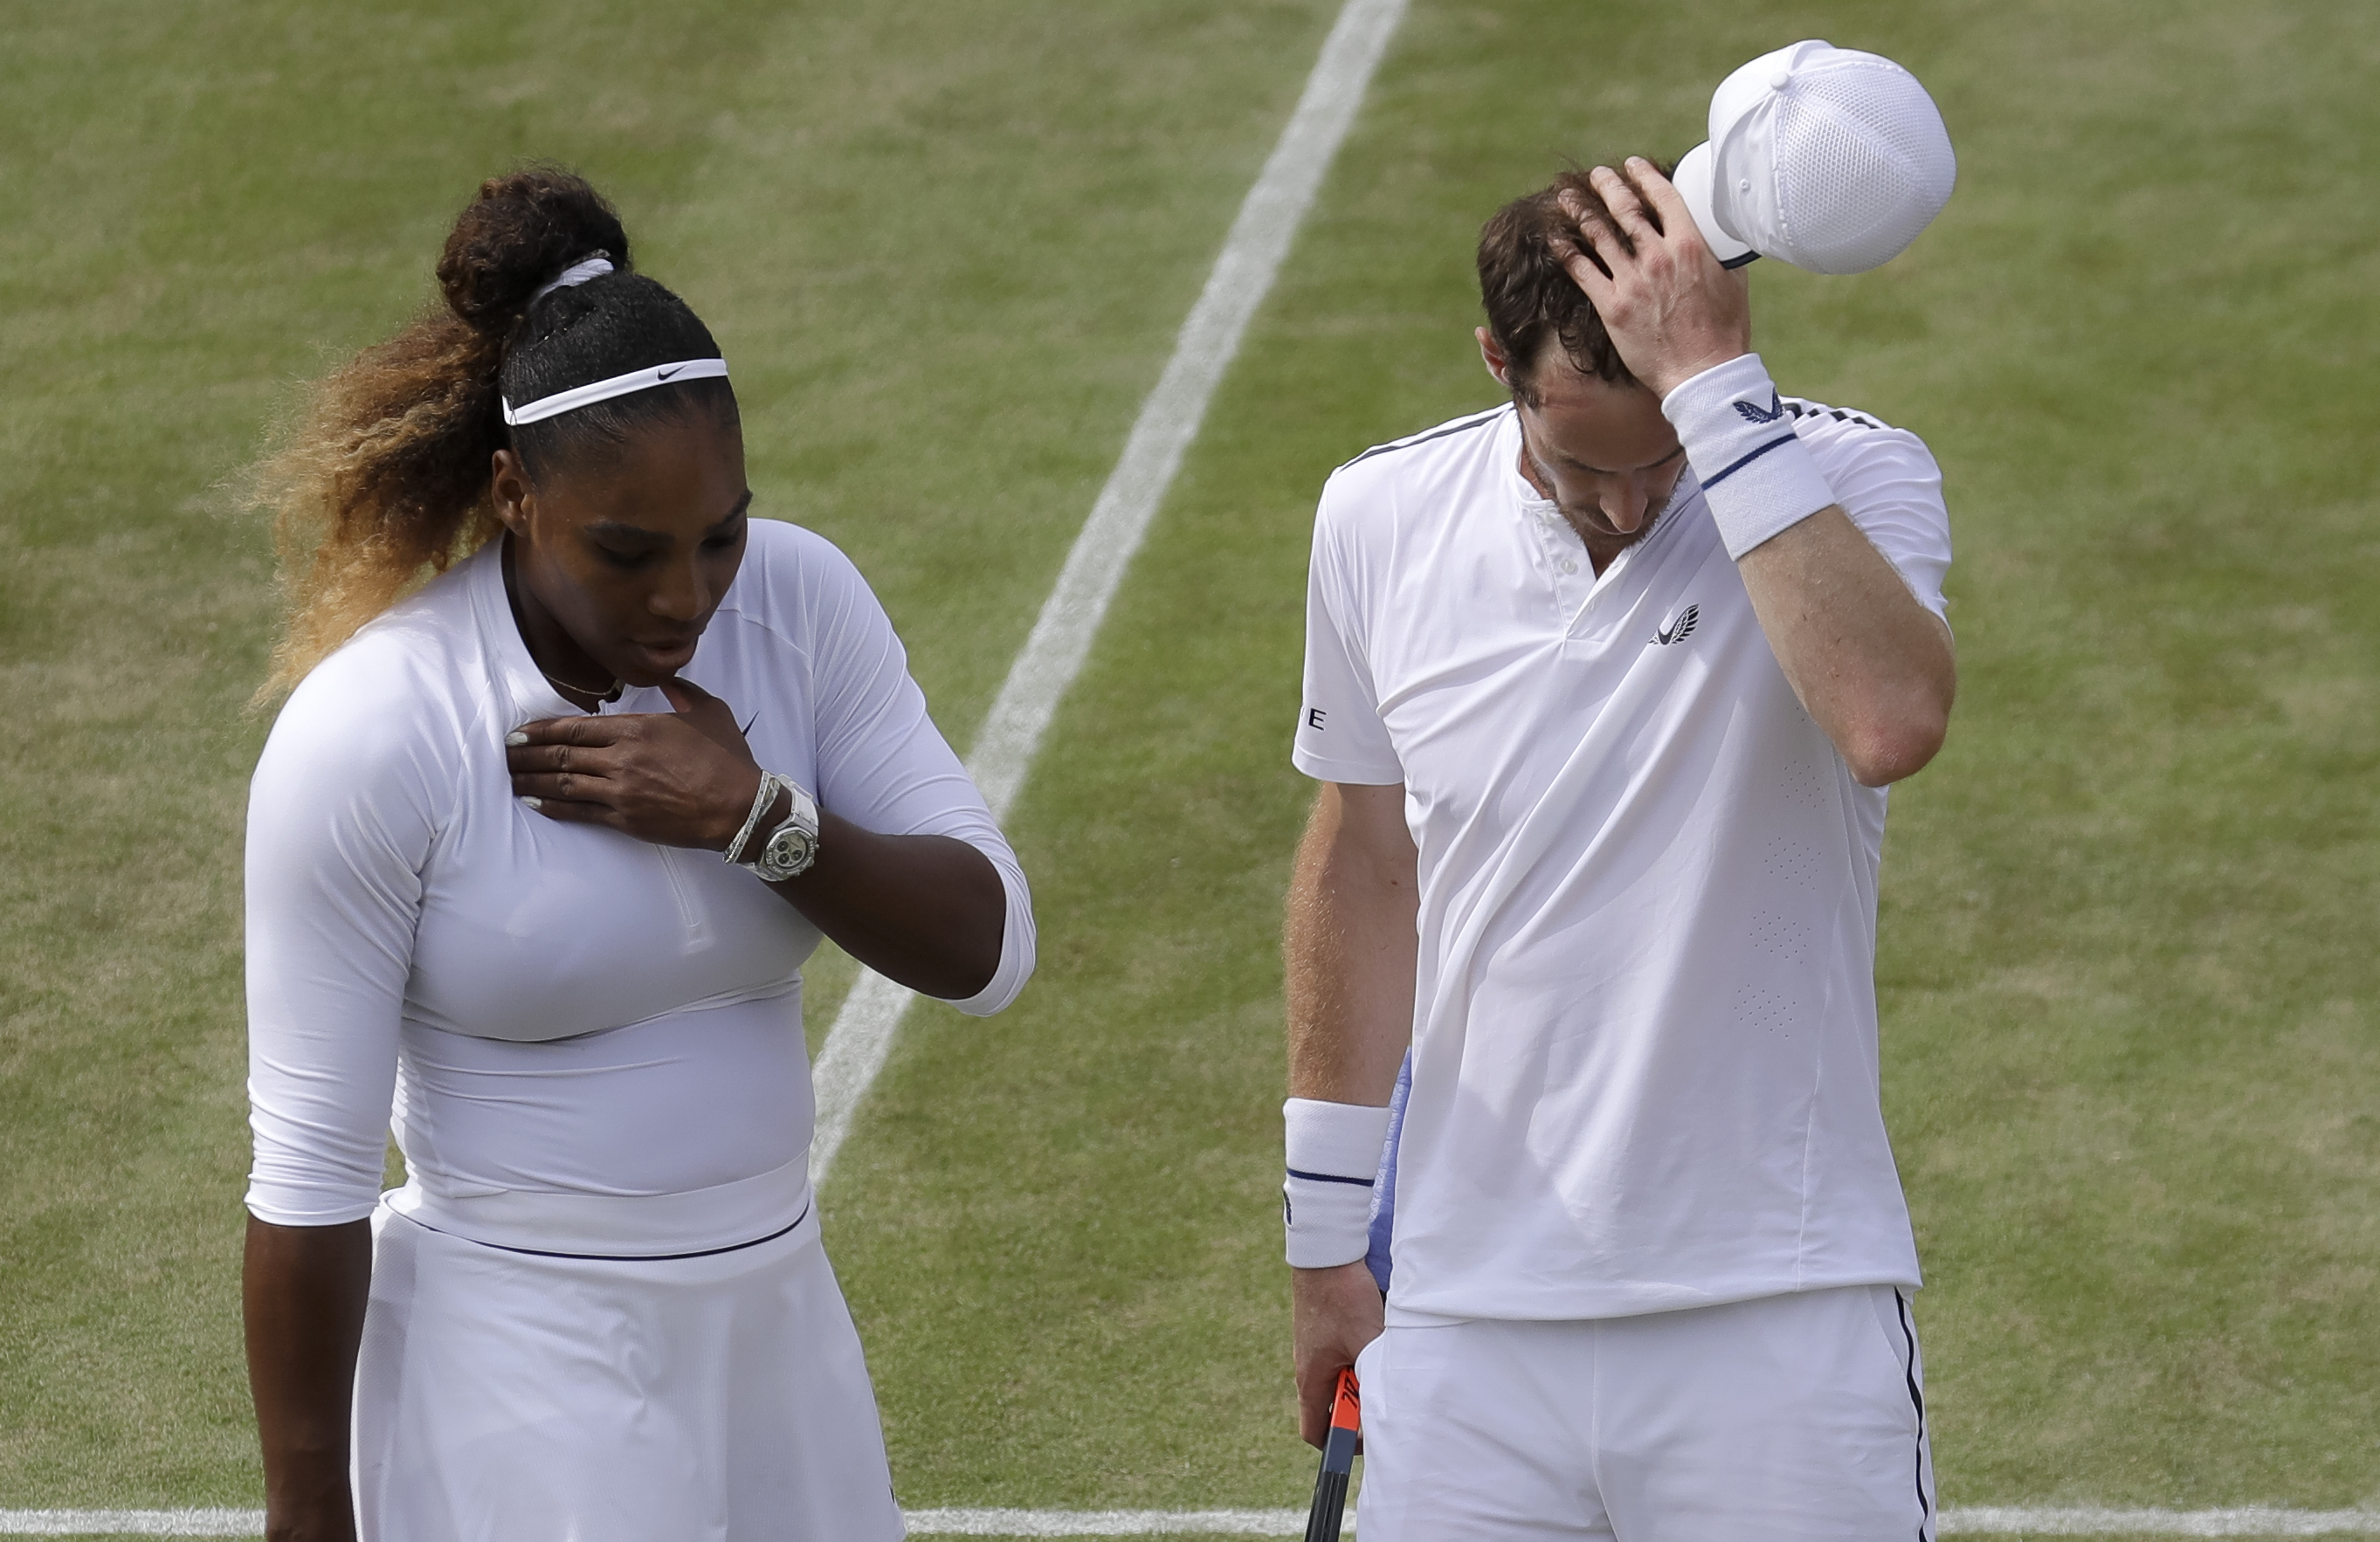 Williams and Murray are out of the mixed doubles competition. Credit: PA